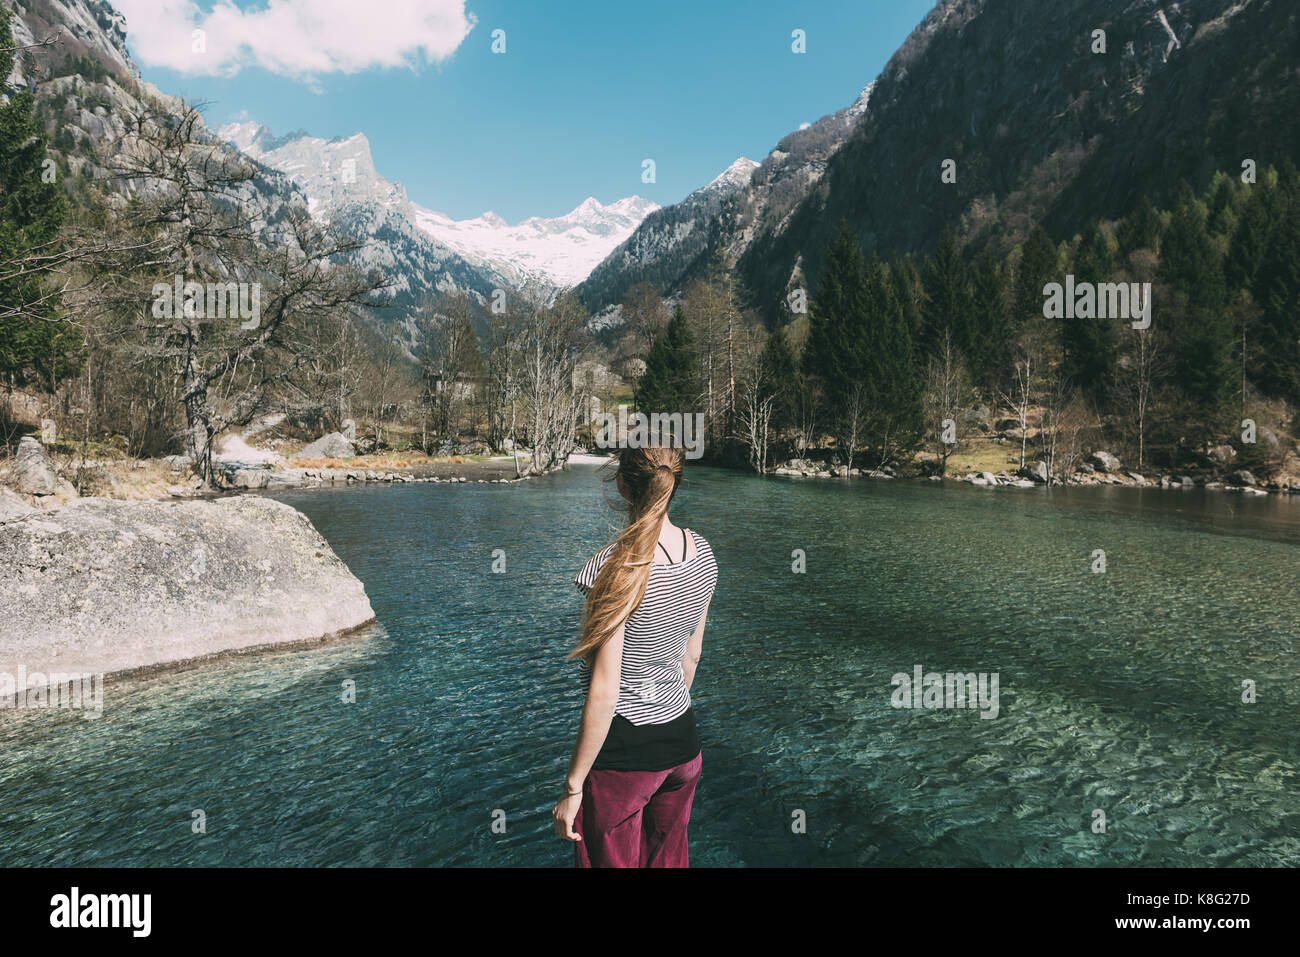 Rear view of young woman looking out over lake, Lombardy, Italy - Stock Image